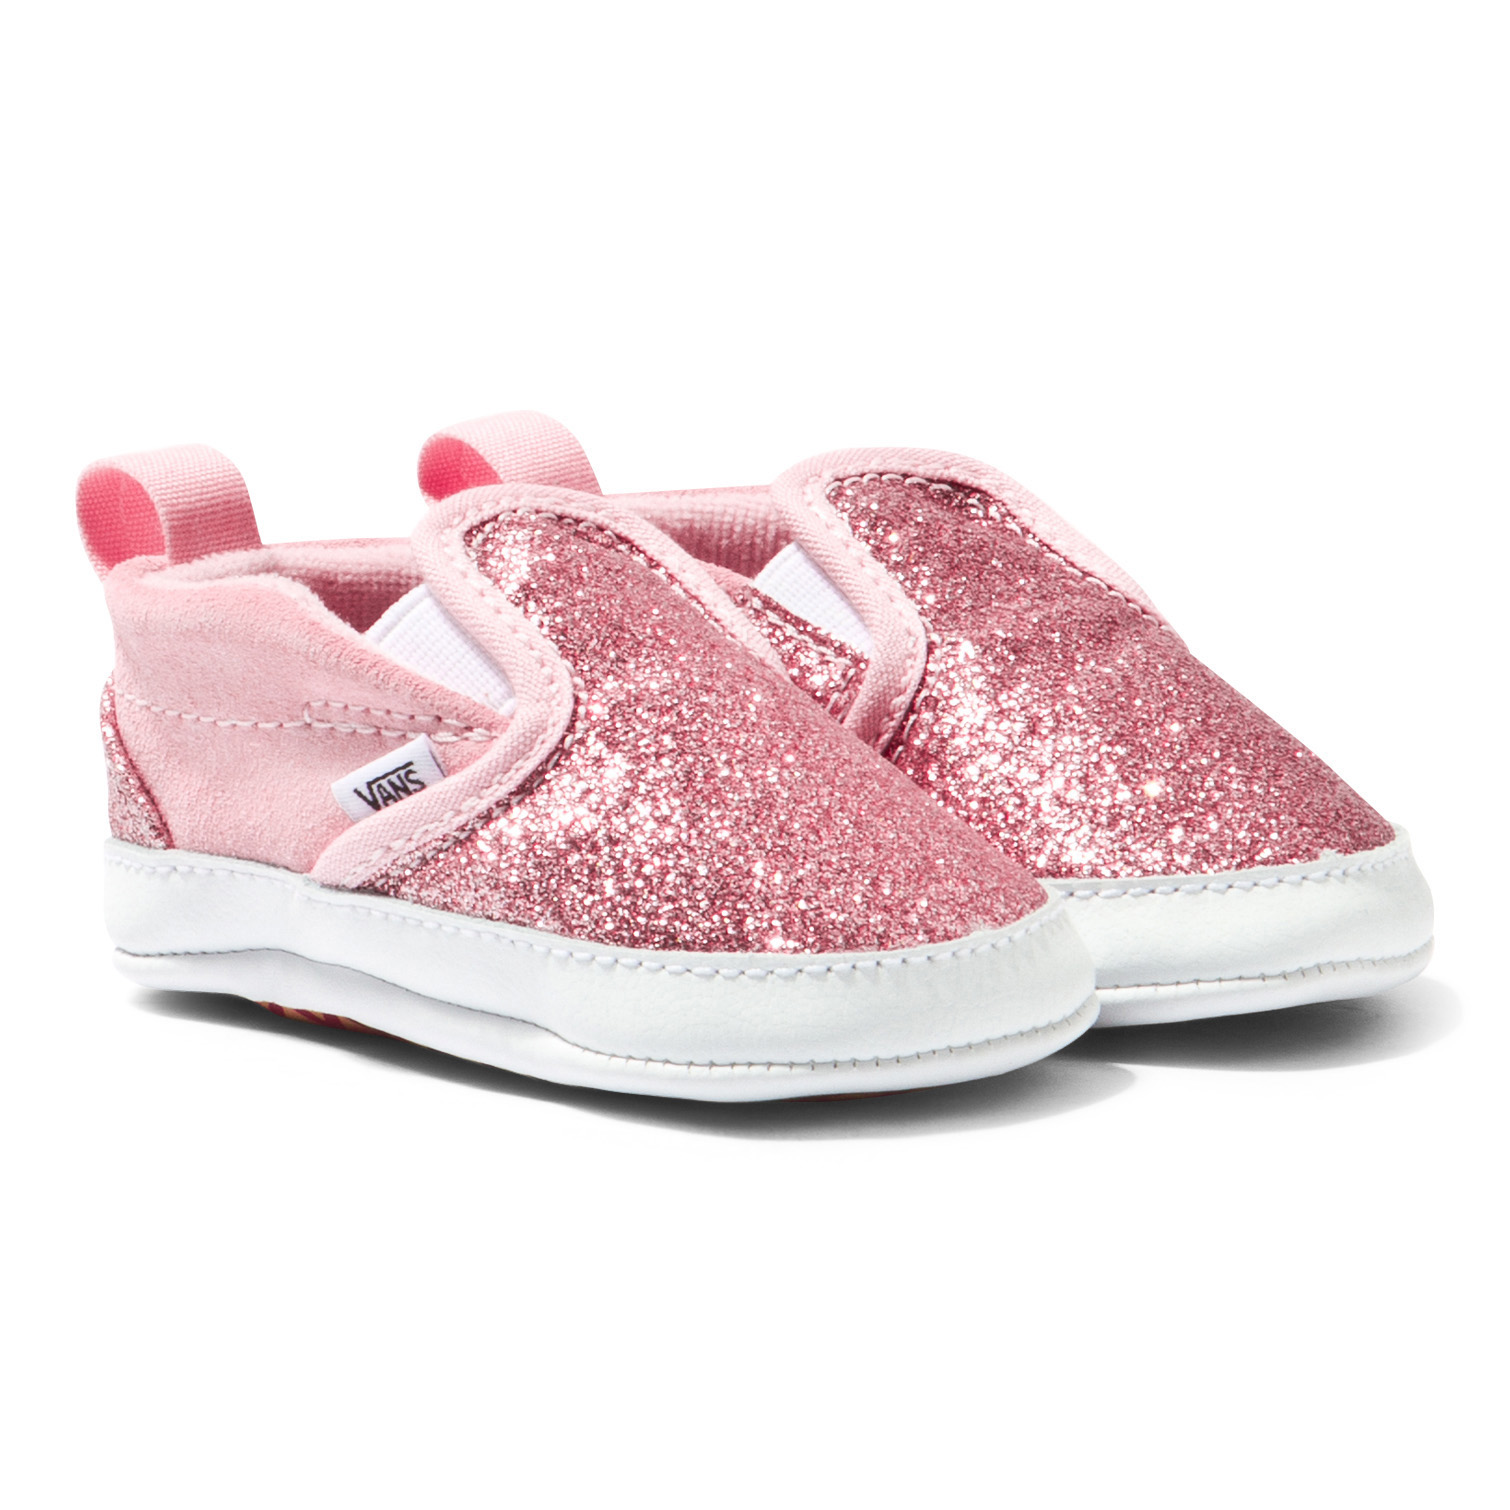 ff0cd09f2f Vans Pink Shimmer Slip On V Crib Shoes